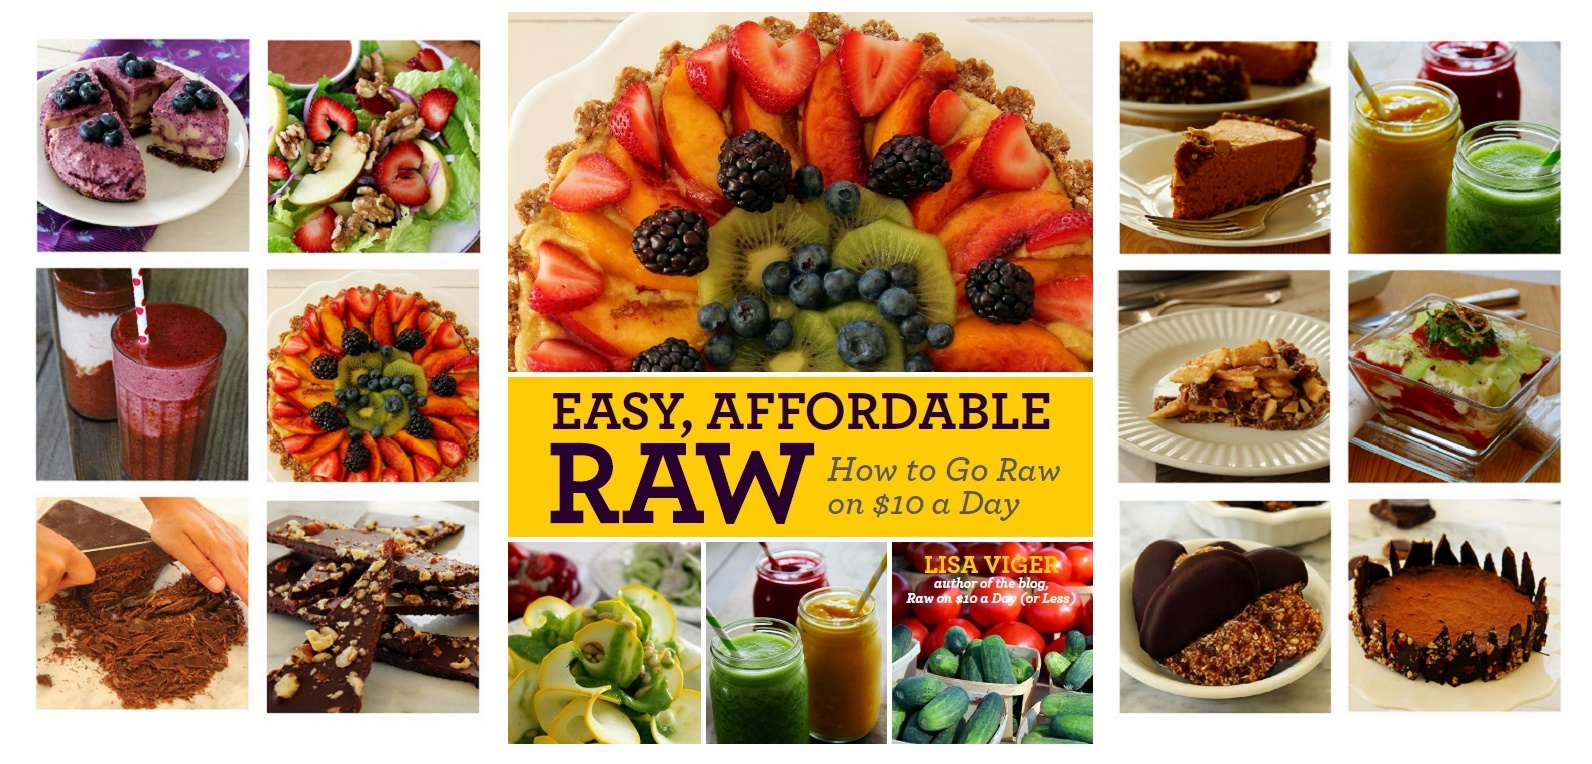 Easy Affordable Raw!